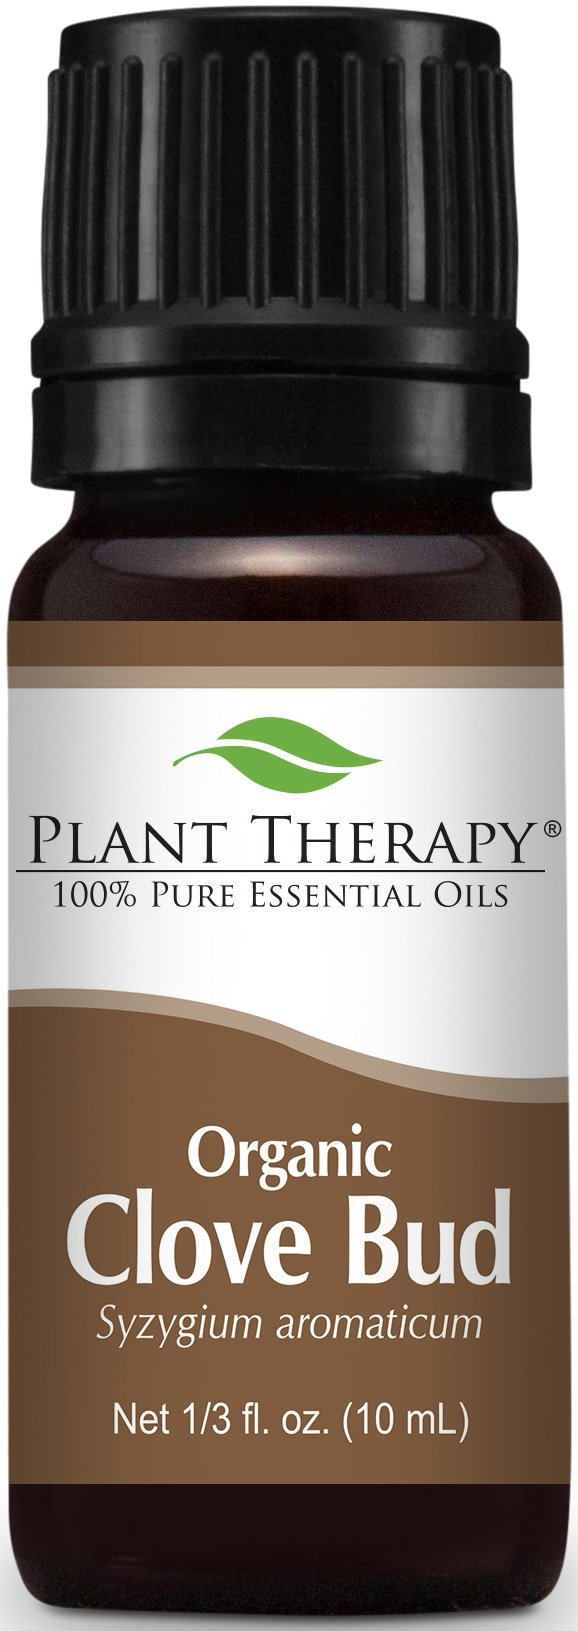 Plant Therapy USDA Certified Organic Clove Bud Essential Oil. 100% Pure, Undiluted, Therapeutic Grade. 10 ml (1/3 oz).